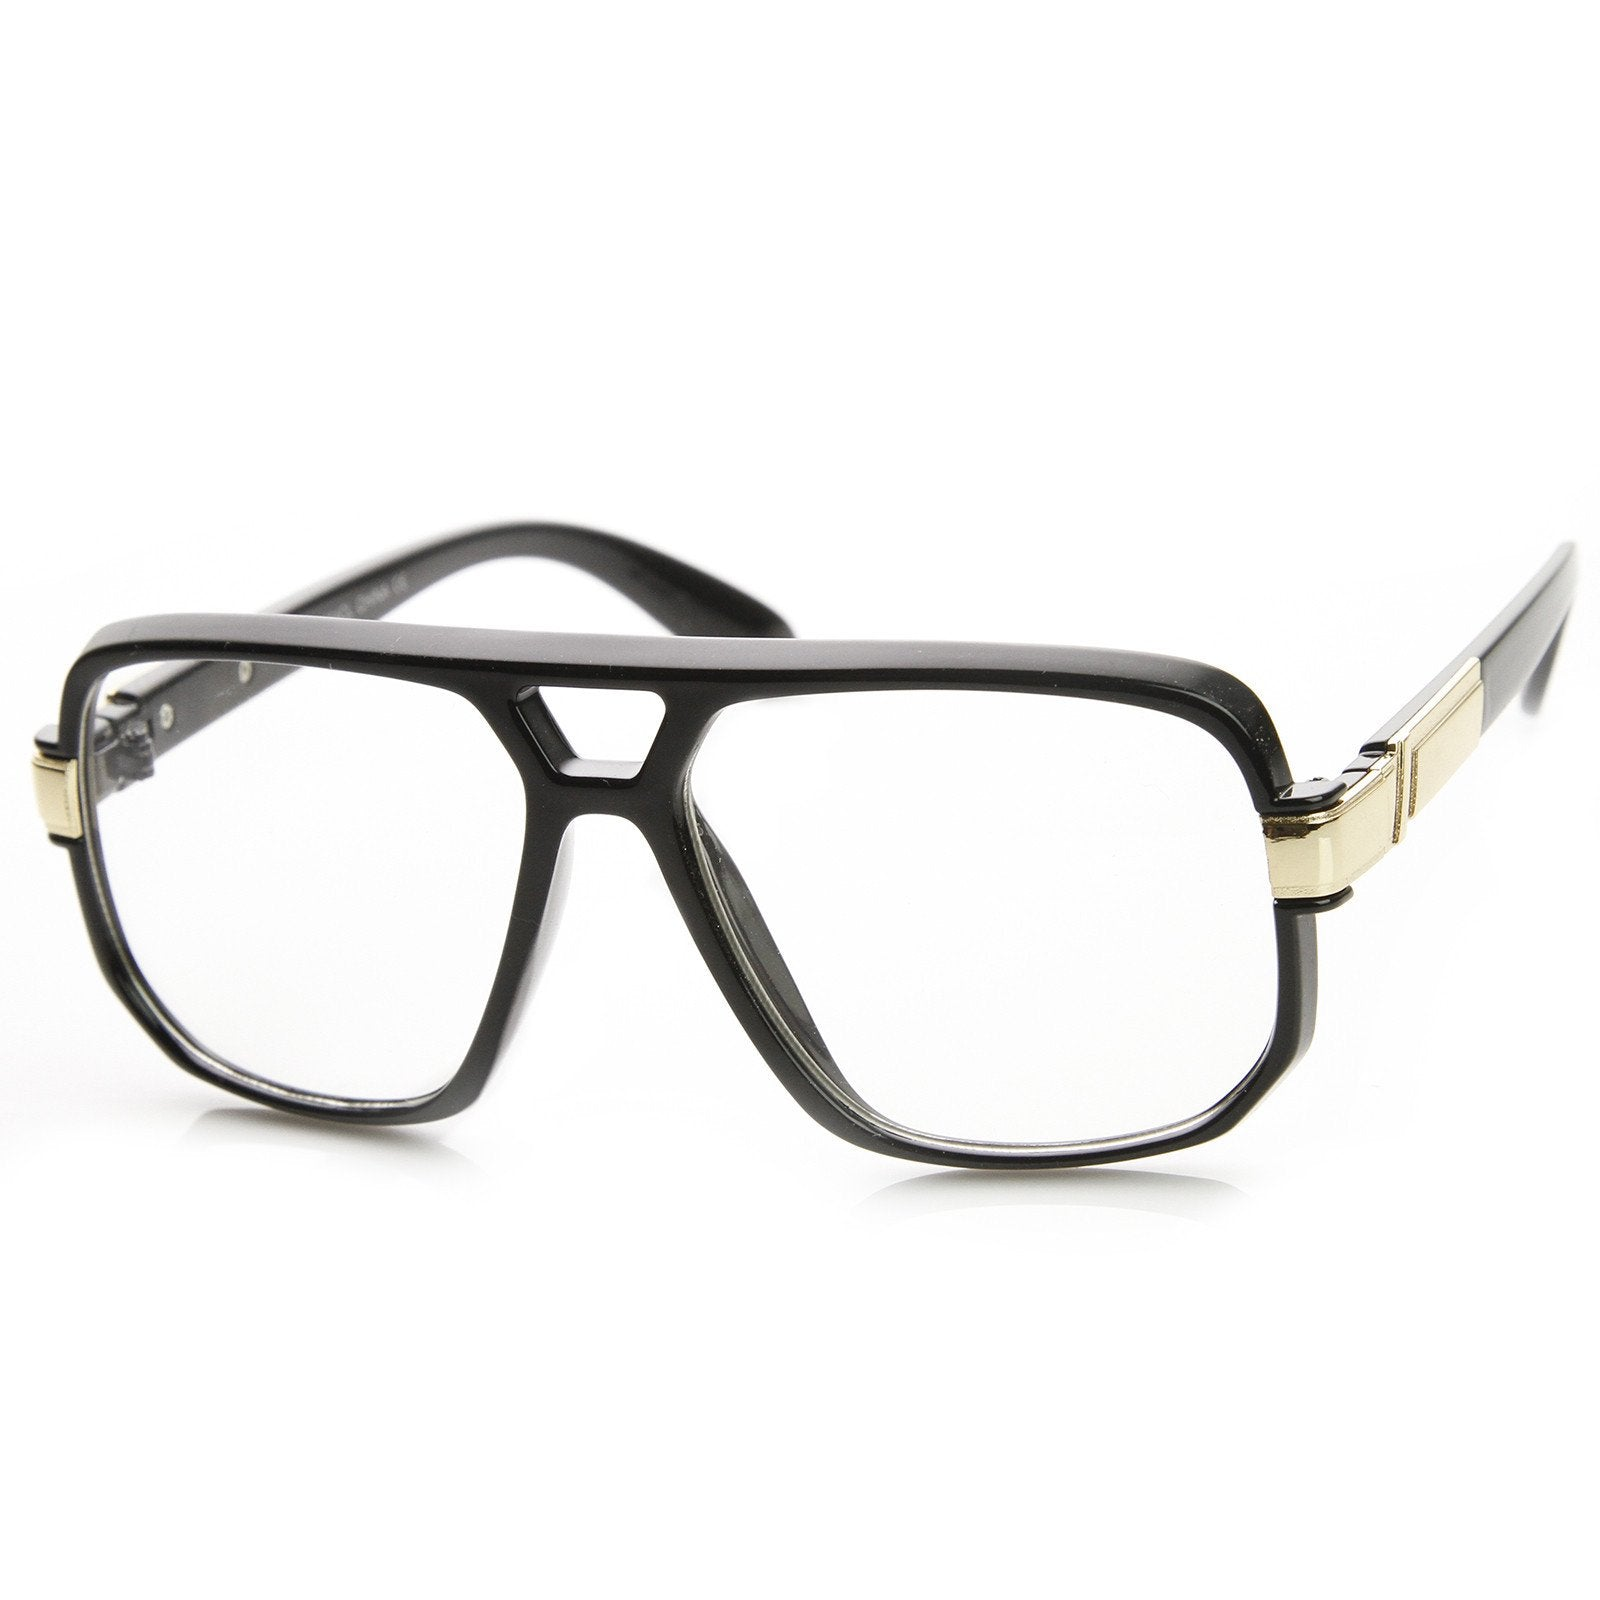 ff2d9547e0f Retro 1980's Classic Square Frame Hip Hop Clear Lens Glasses 8975